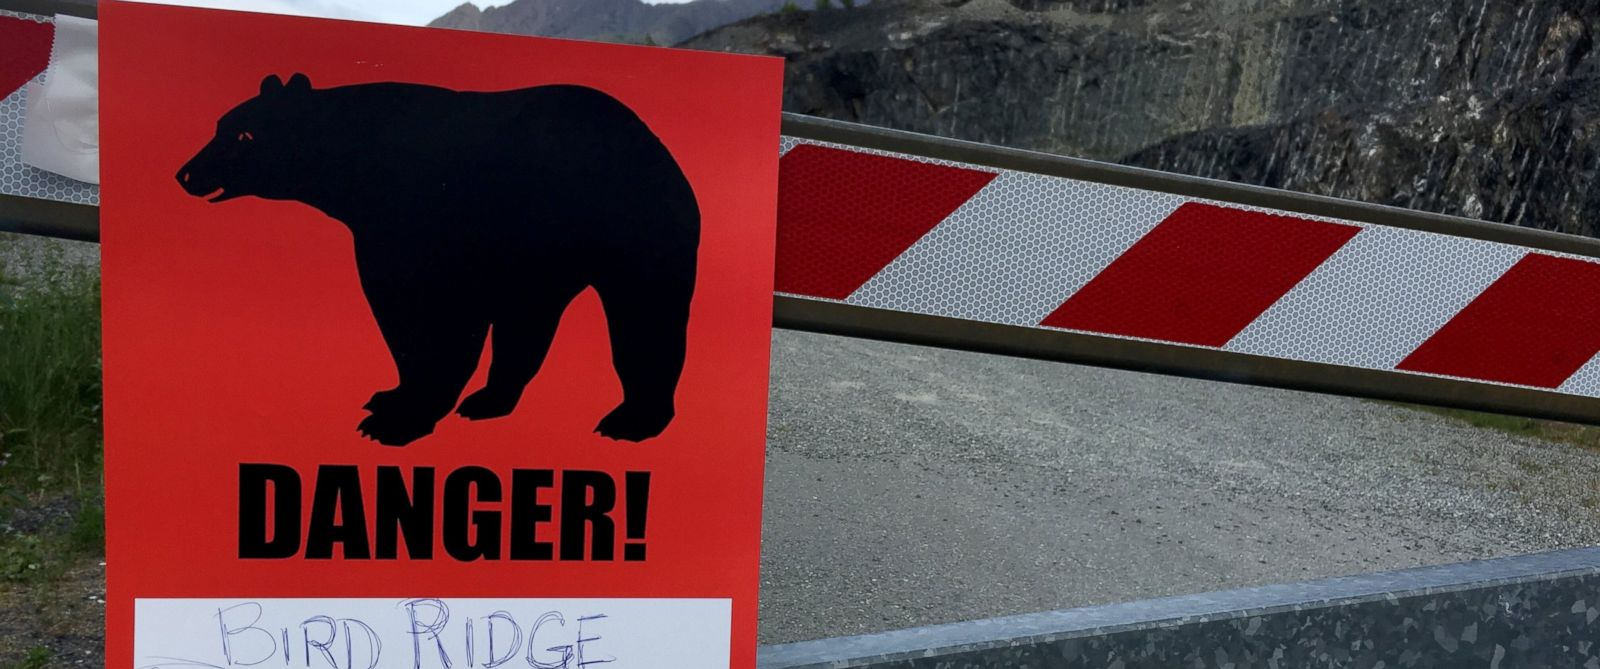 PHOTO: A sign warns people that the trail ahead is closed, June 19, 2017, after a fatal bear mauling at Bird Ridge Trail in Anchorage, Alaska.